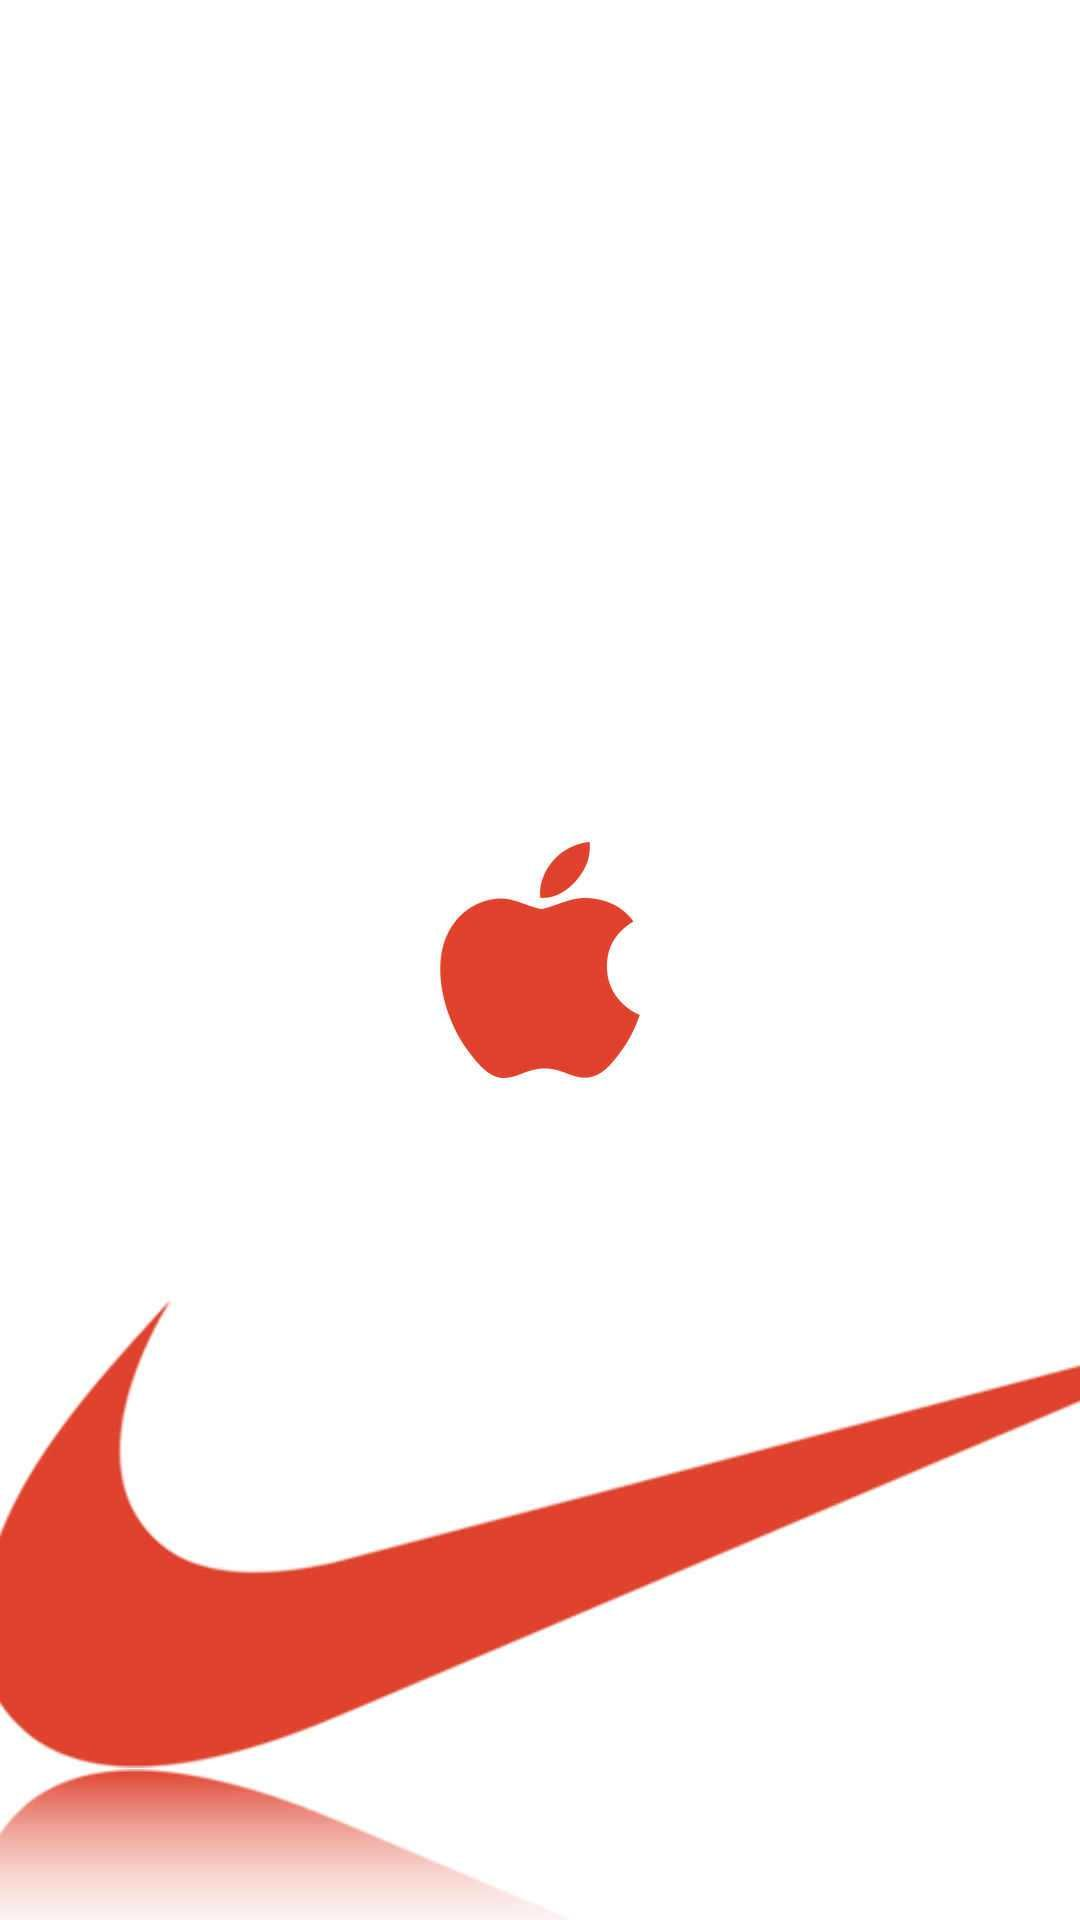 Nike And Apple Iphone Wallpaper Apple Tite In 2019 Apple Logo